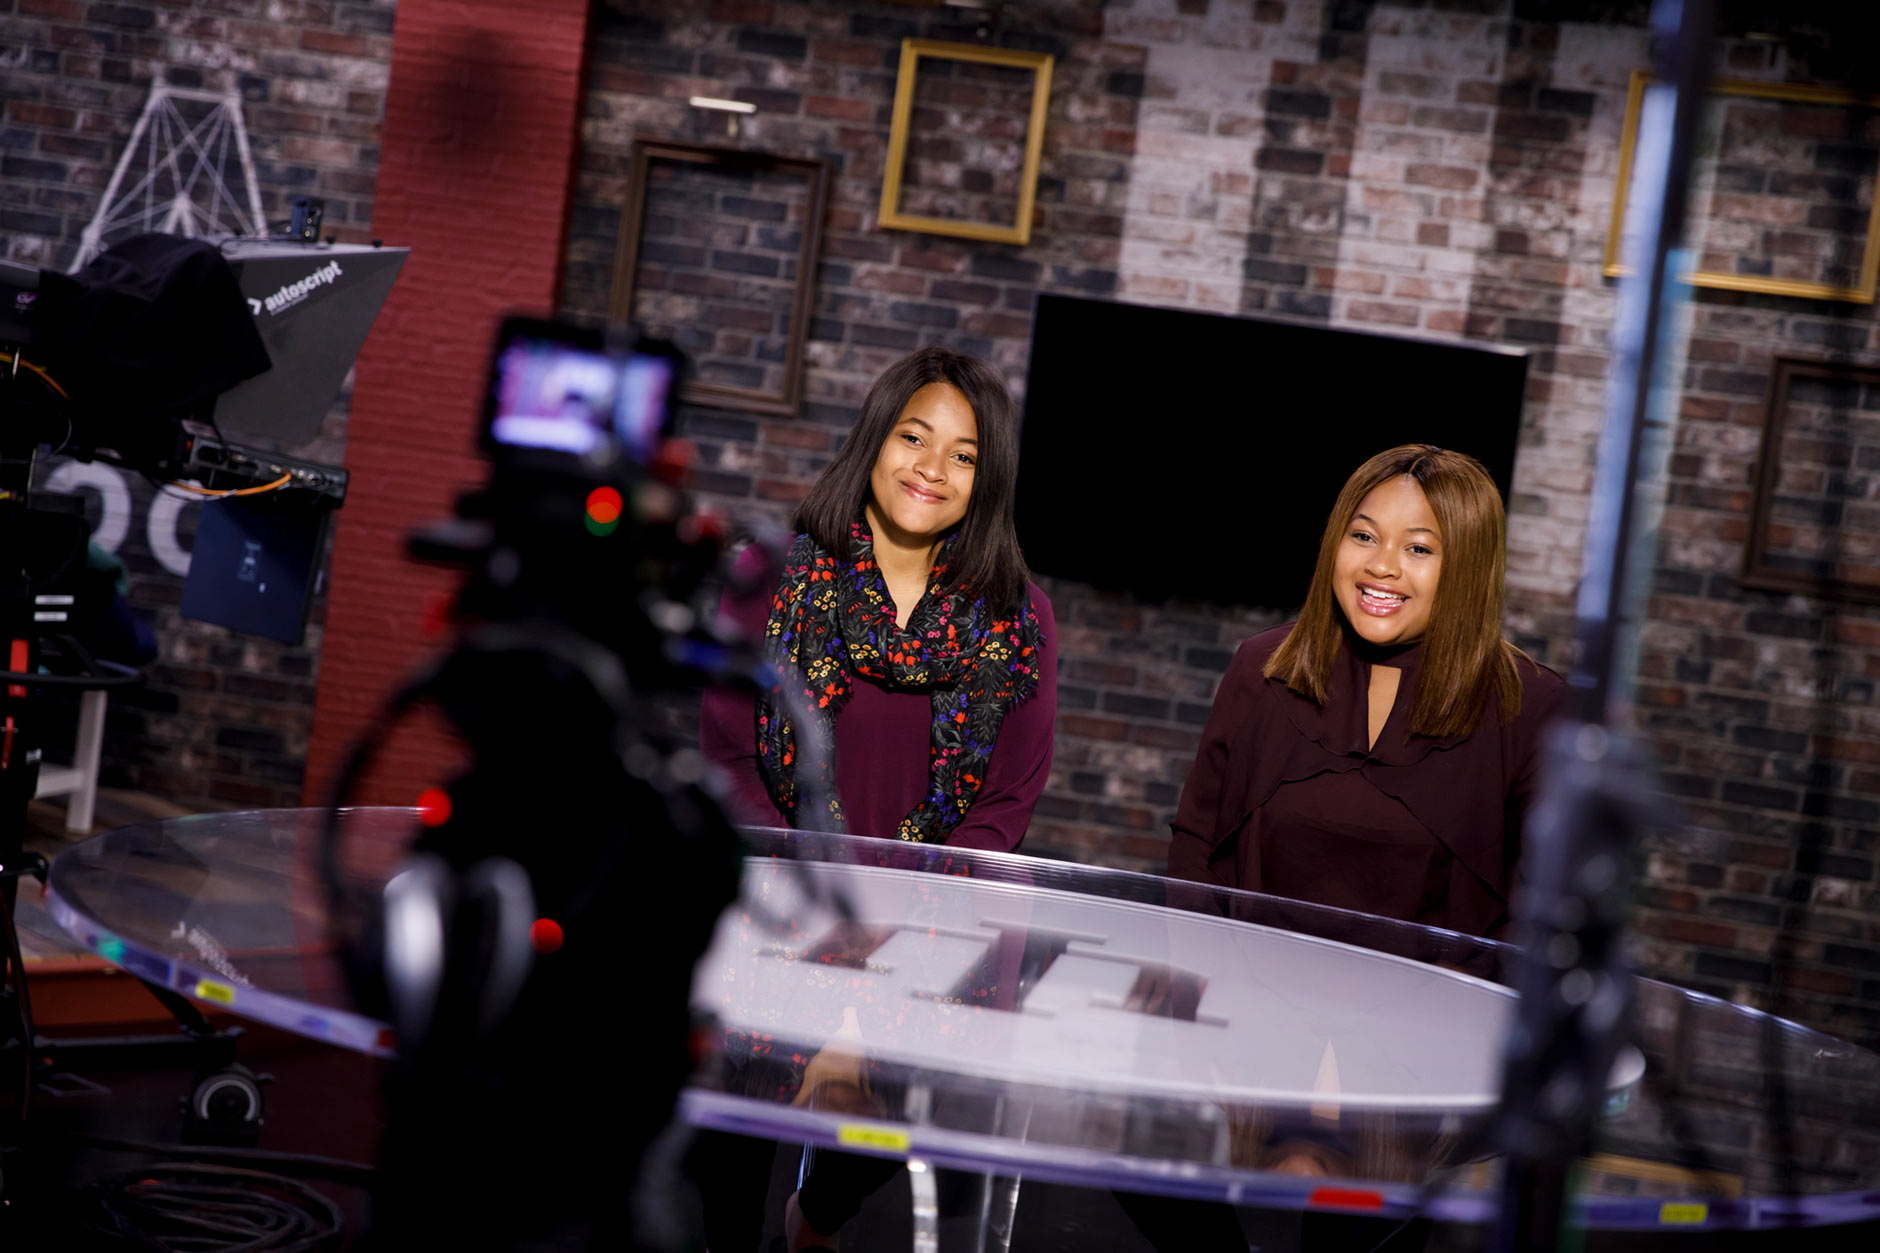 Sisters Mica, left, and Maya Caine, graduating seniors at IU Bloomington, record a video in a studio at The Media School at Indiana University on Tuesday, April 10, 2018. (James Brosher/IU Communications)